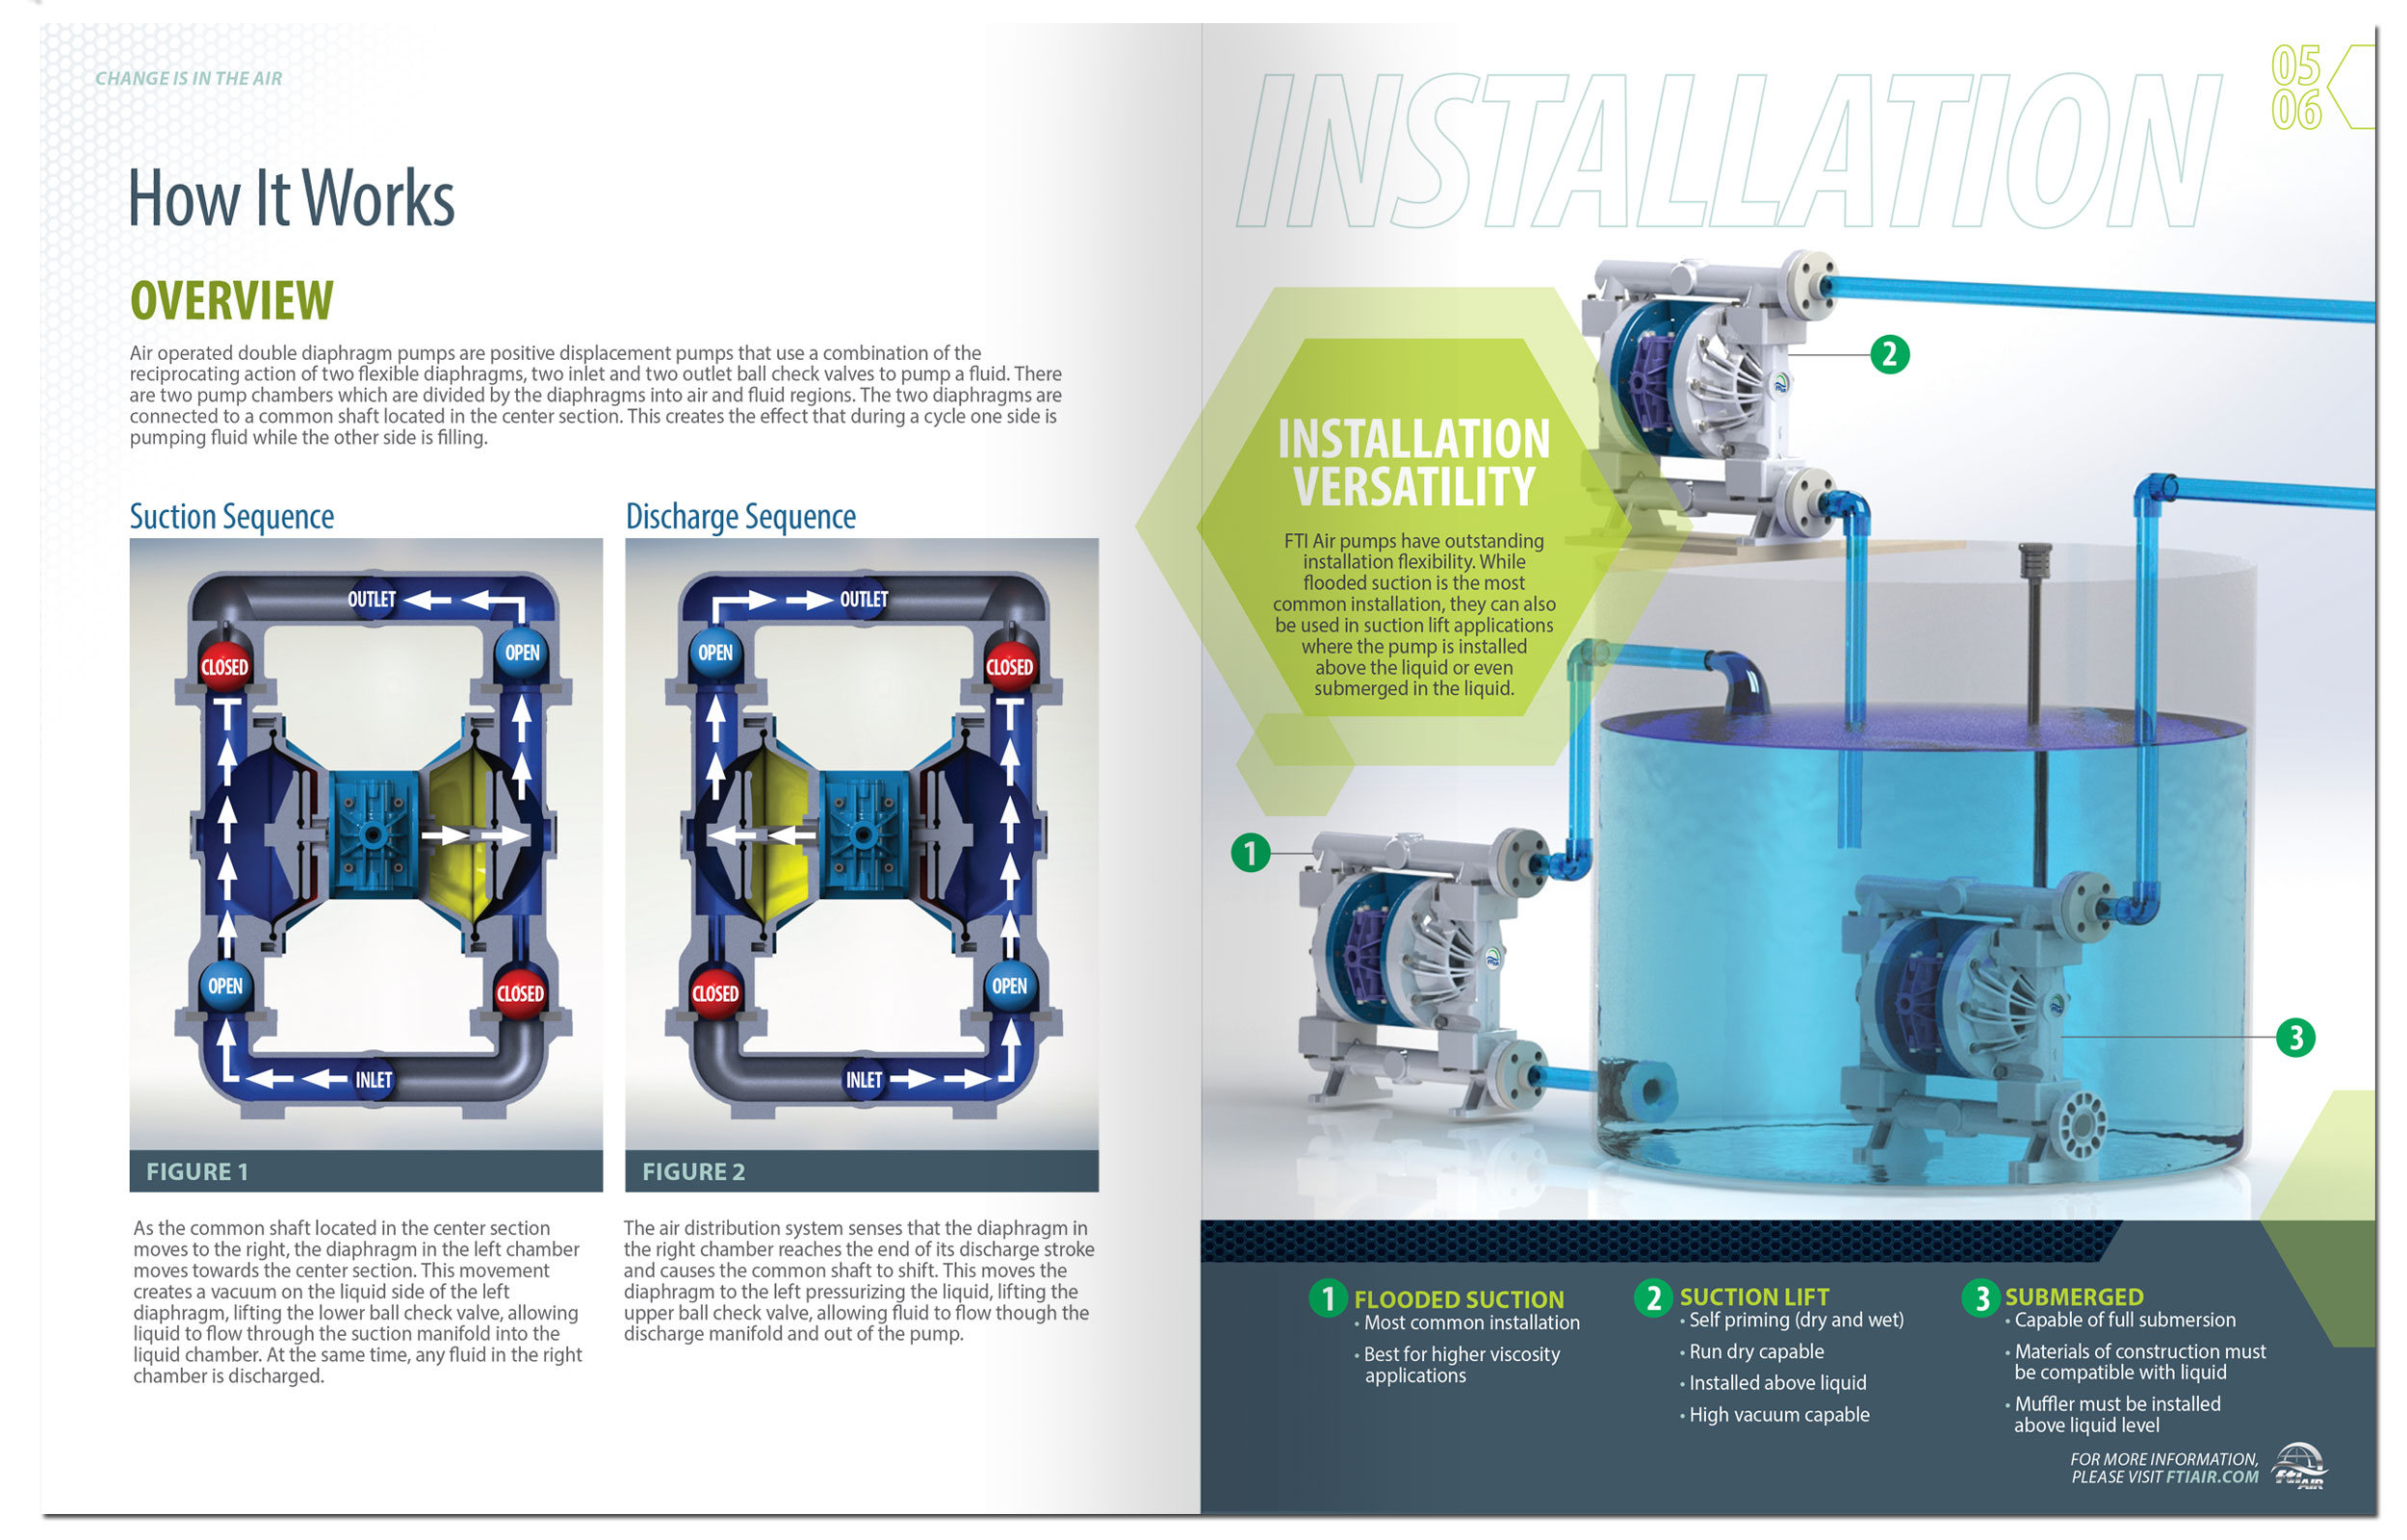 http://papaadvertising.com/wp-content/uploads/2017/01/FT-FTI-Air-Brochure_spread.jpg